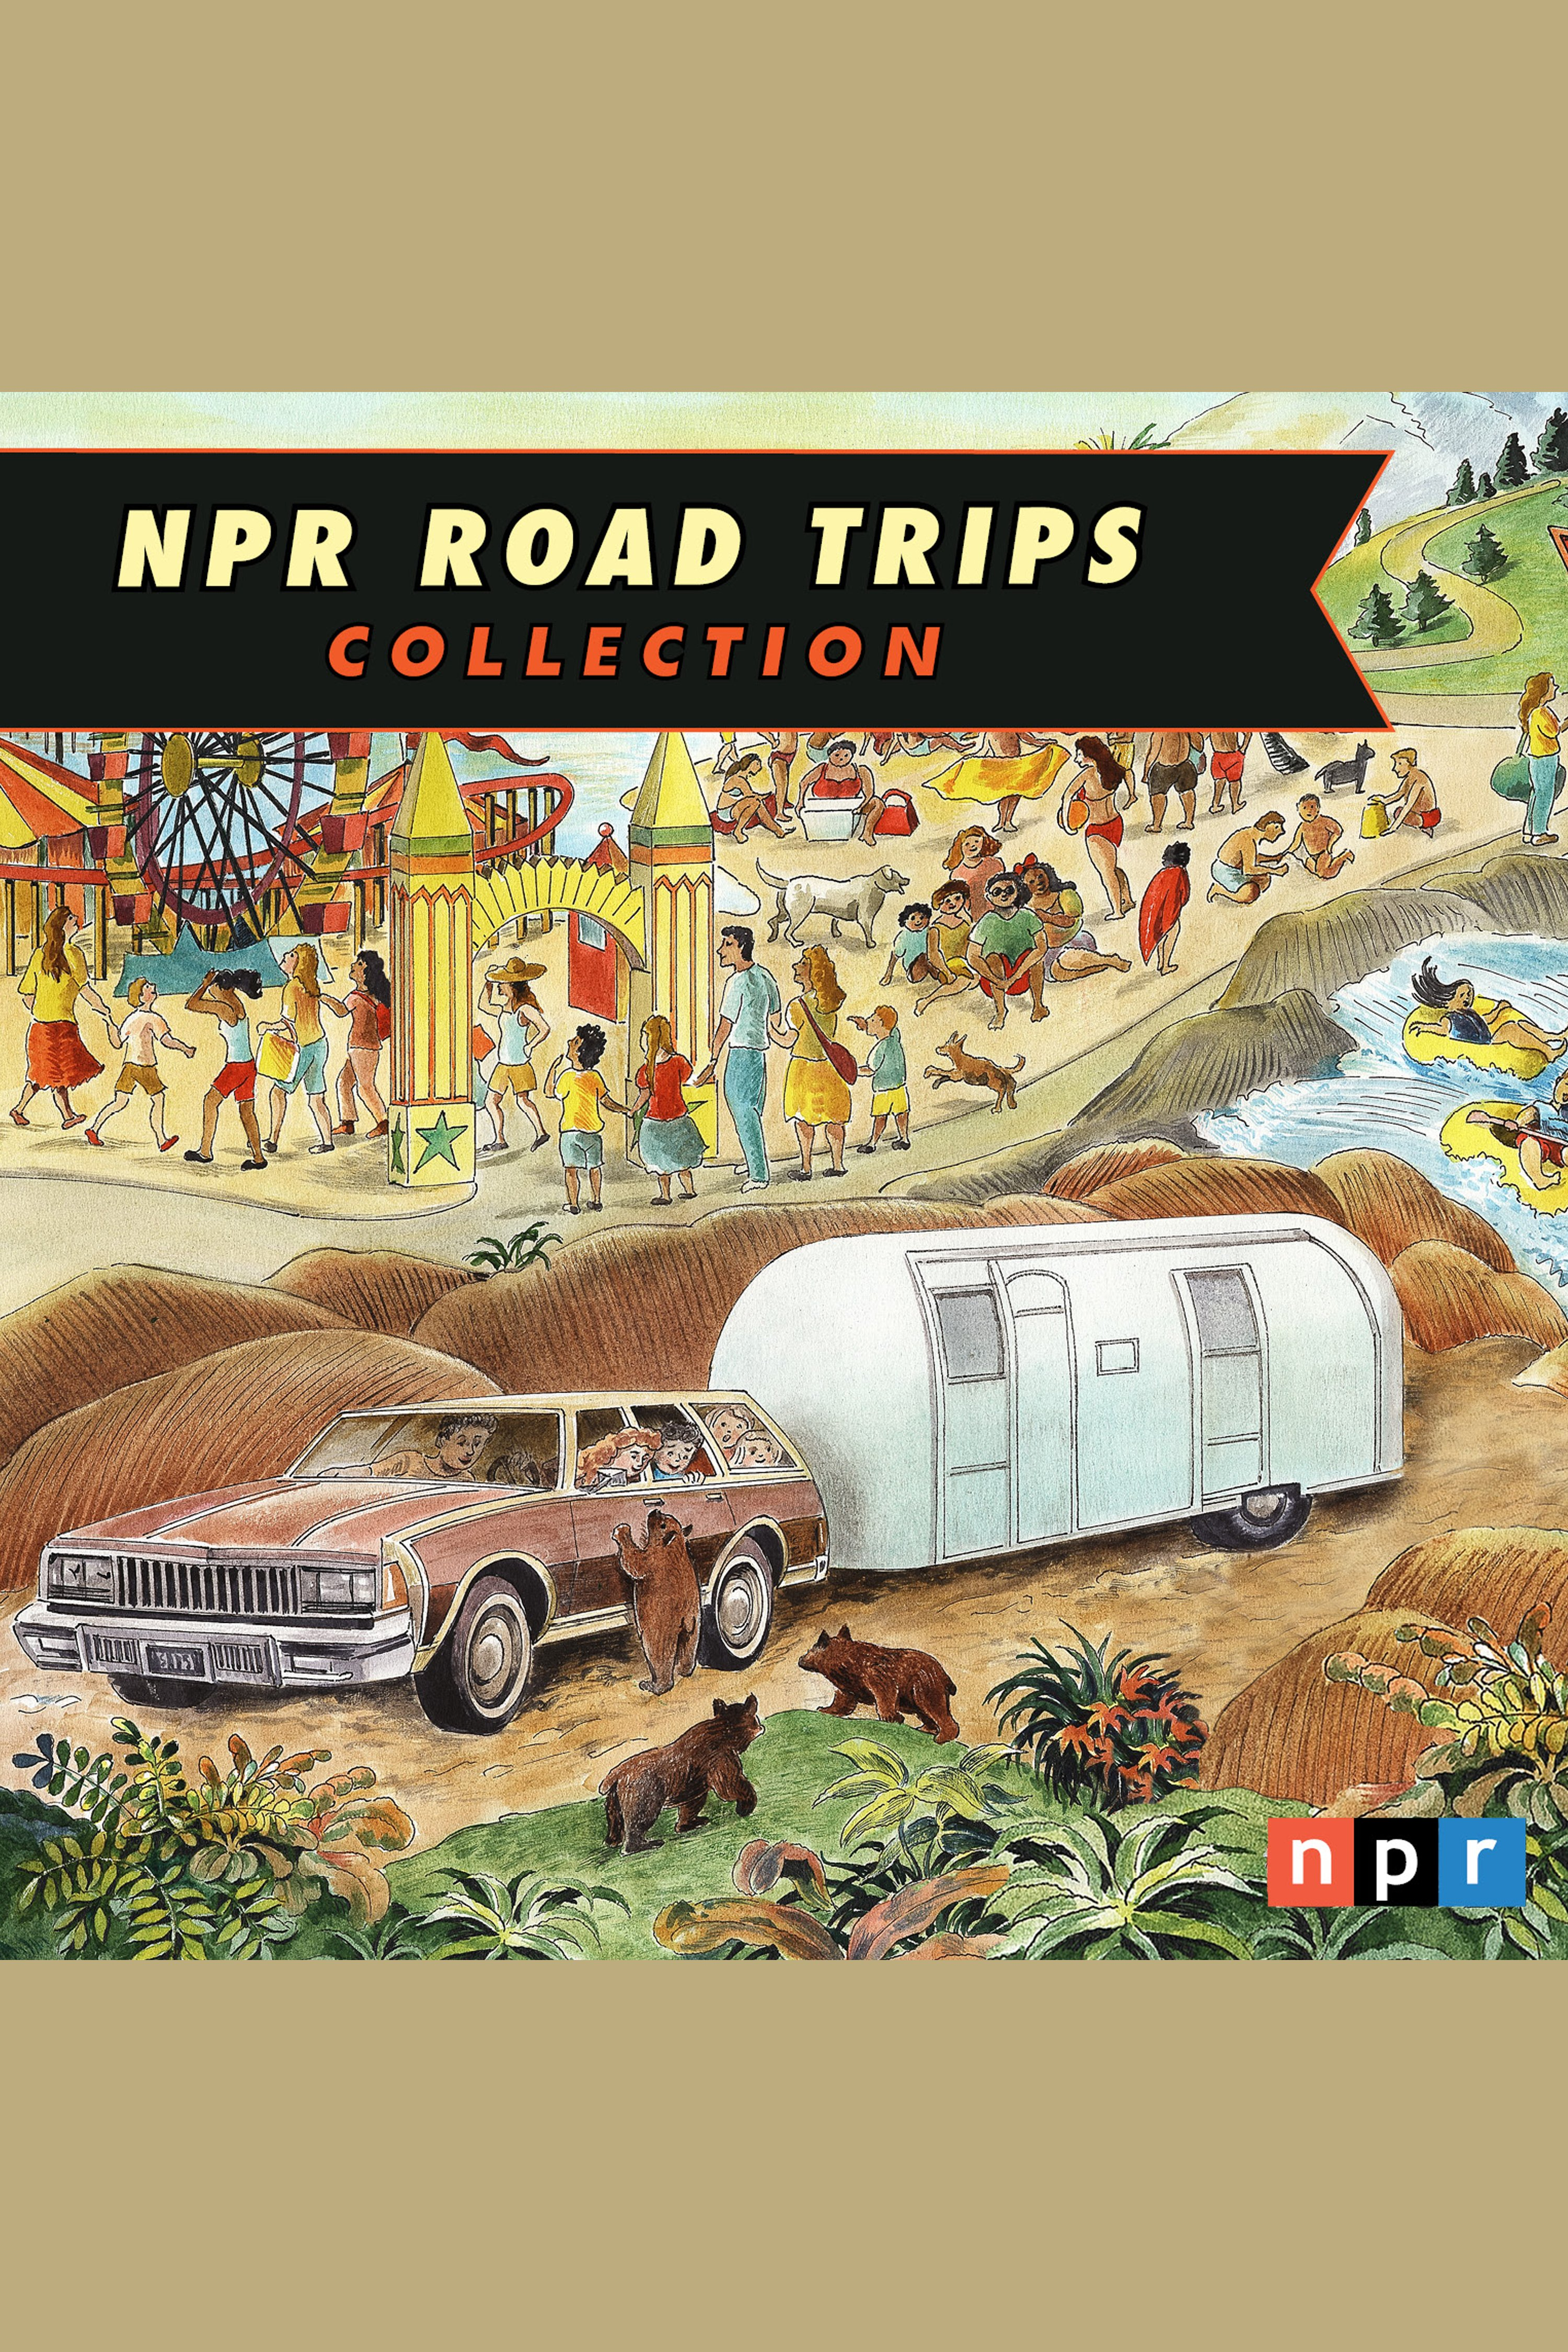 NPR Road Trips Collection: On the Road Again